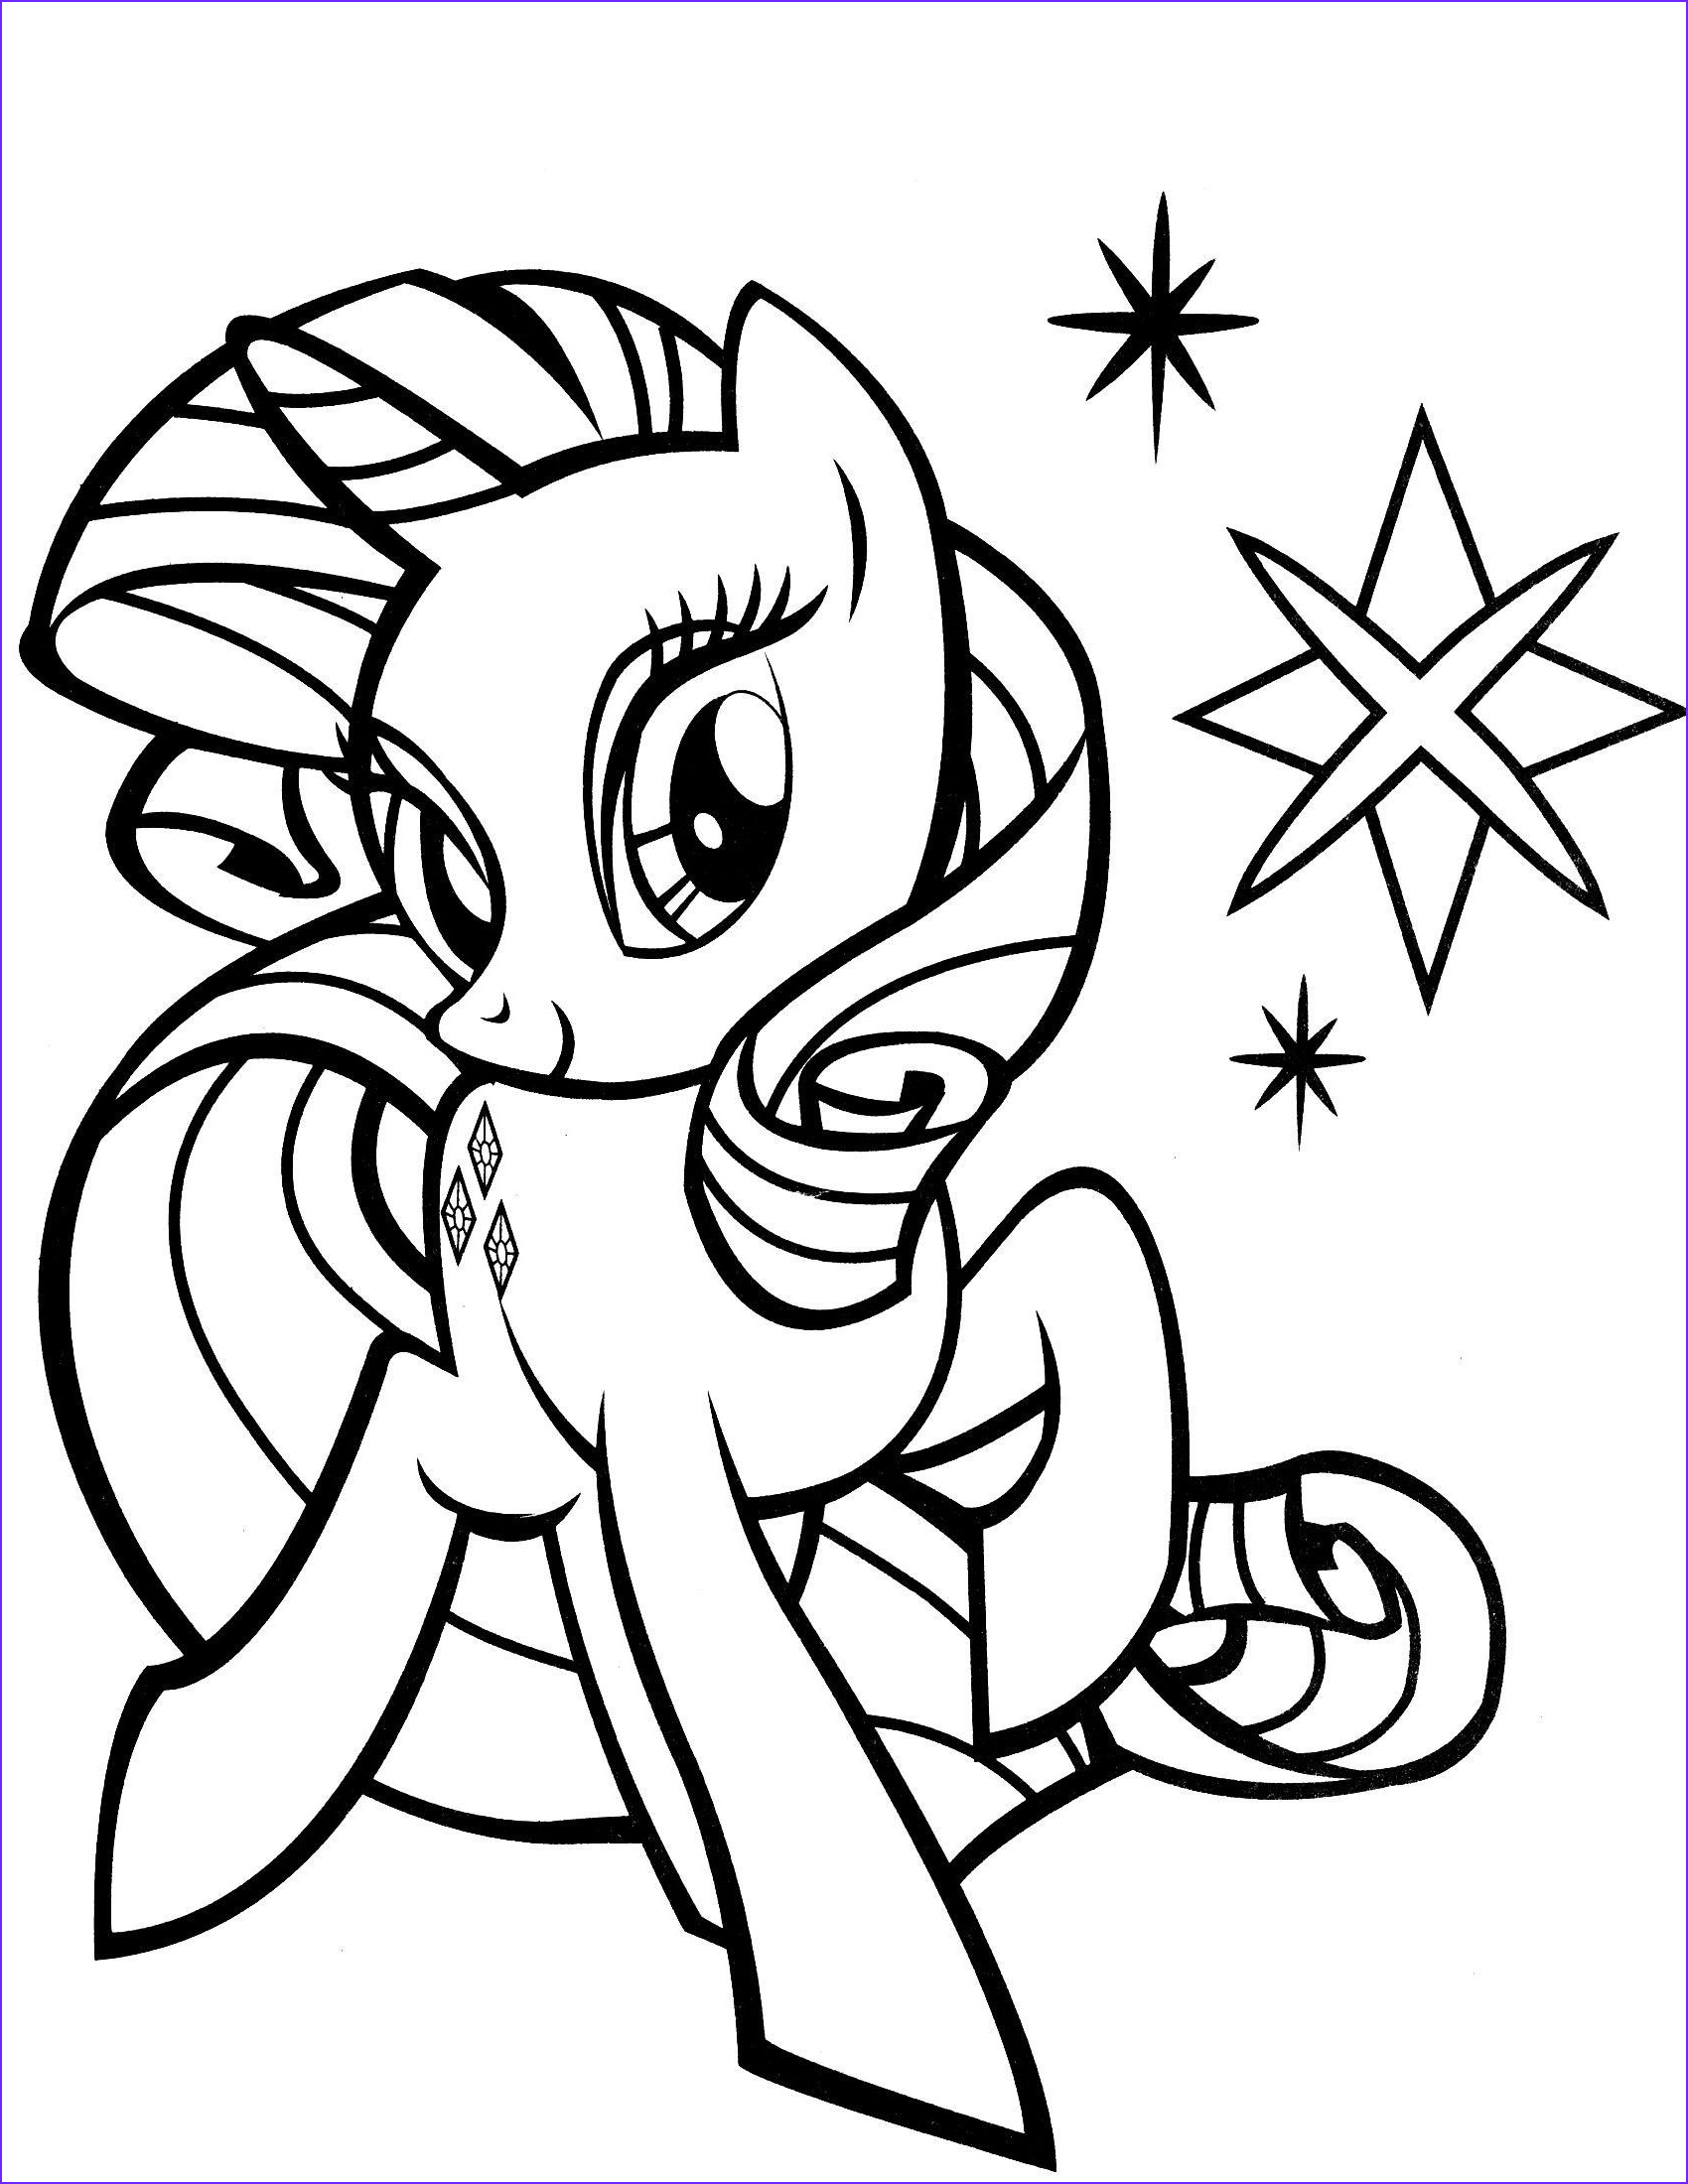 Pdf Coloring Pages Beautiful Photos My Little Pony Coloring Pages Pdf – Through the Thousands